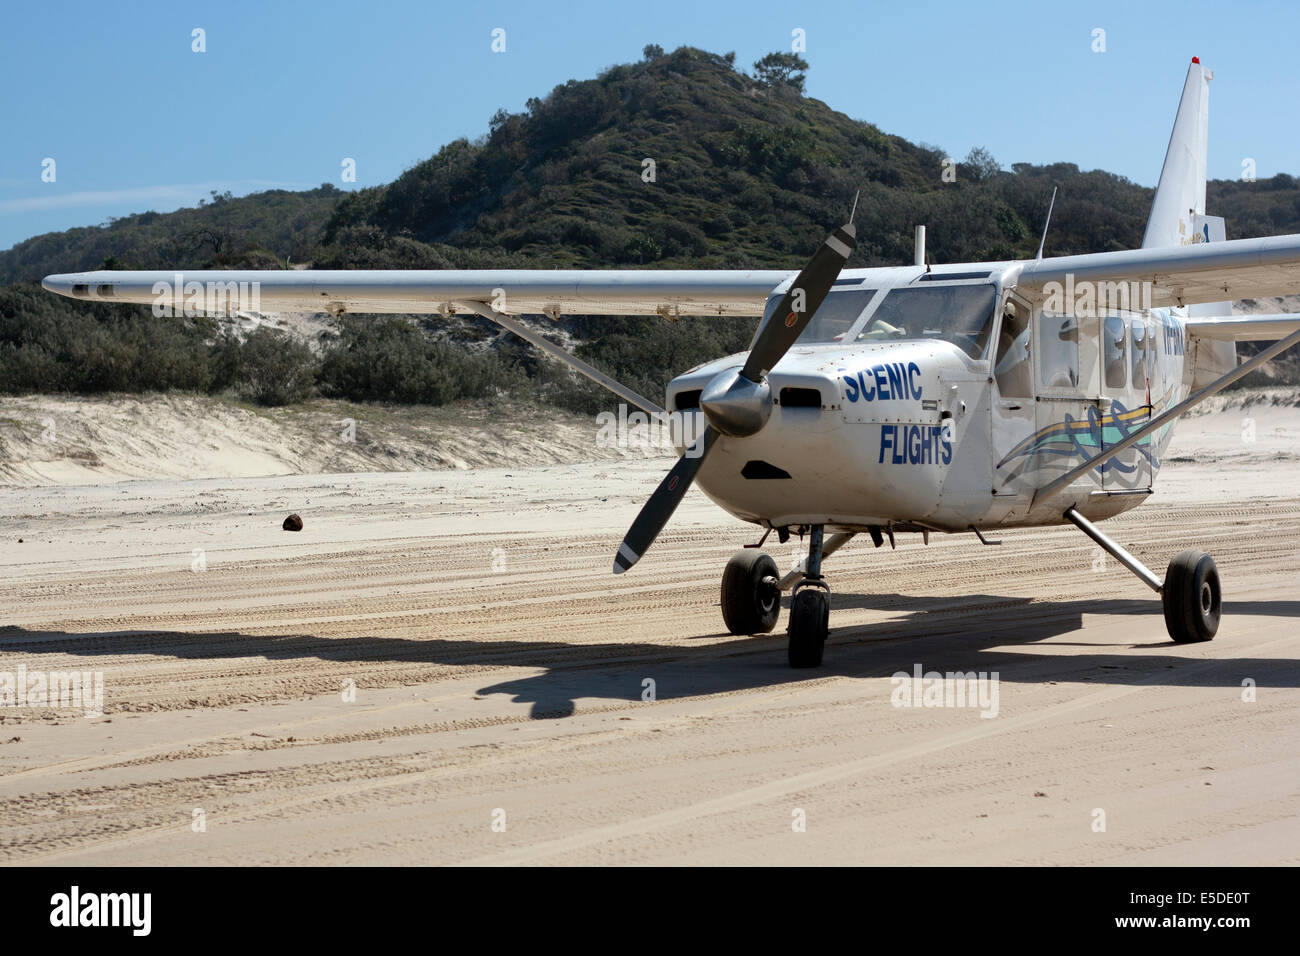 A scenic flight plane sitting on the beach on Fraser Island - Stock Image